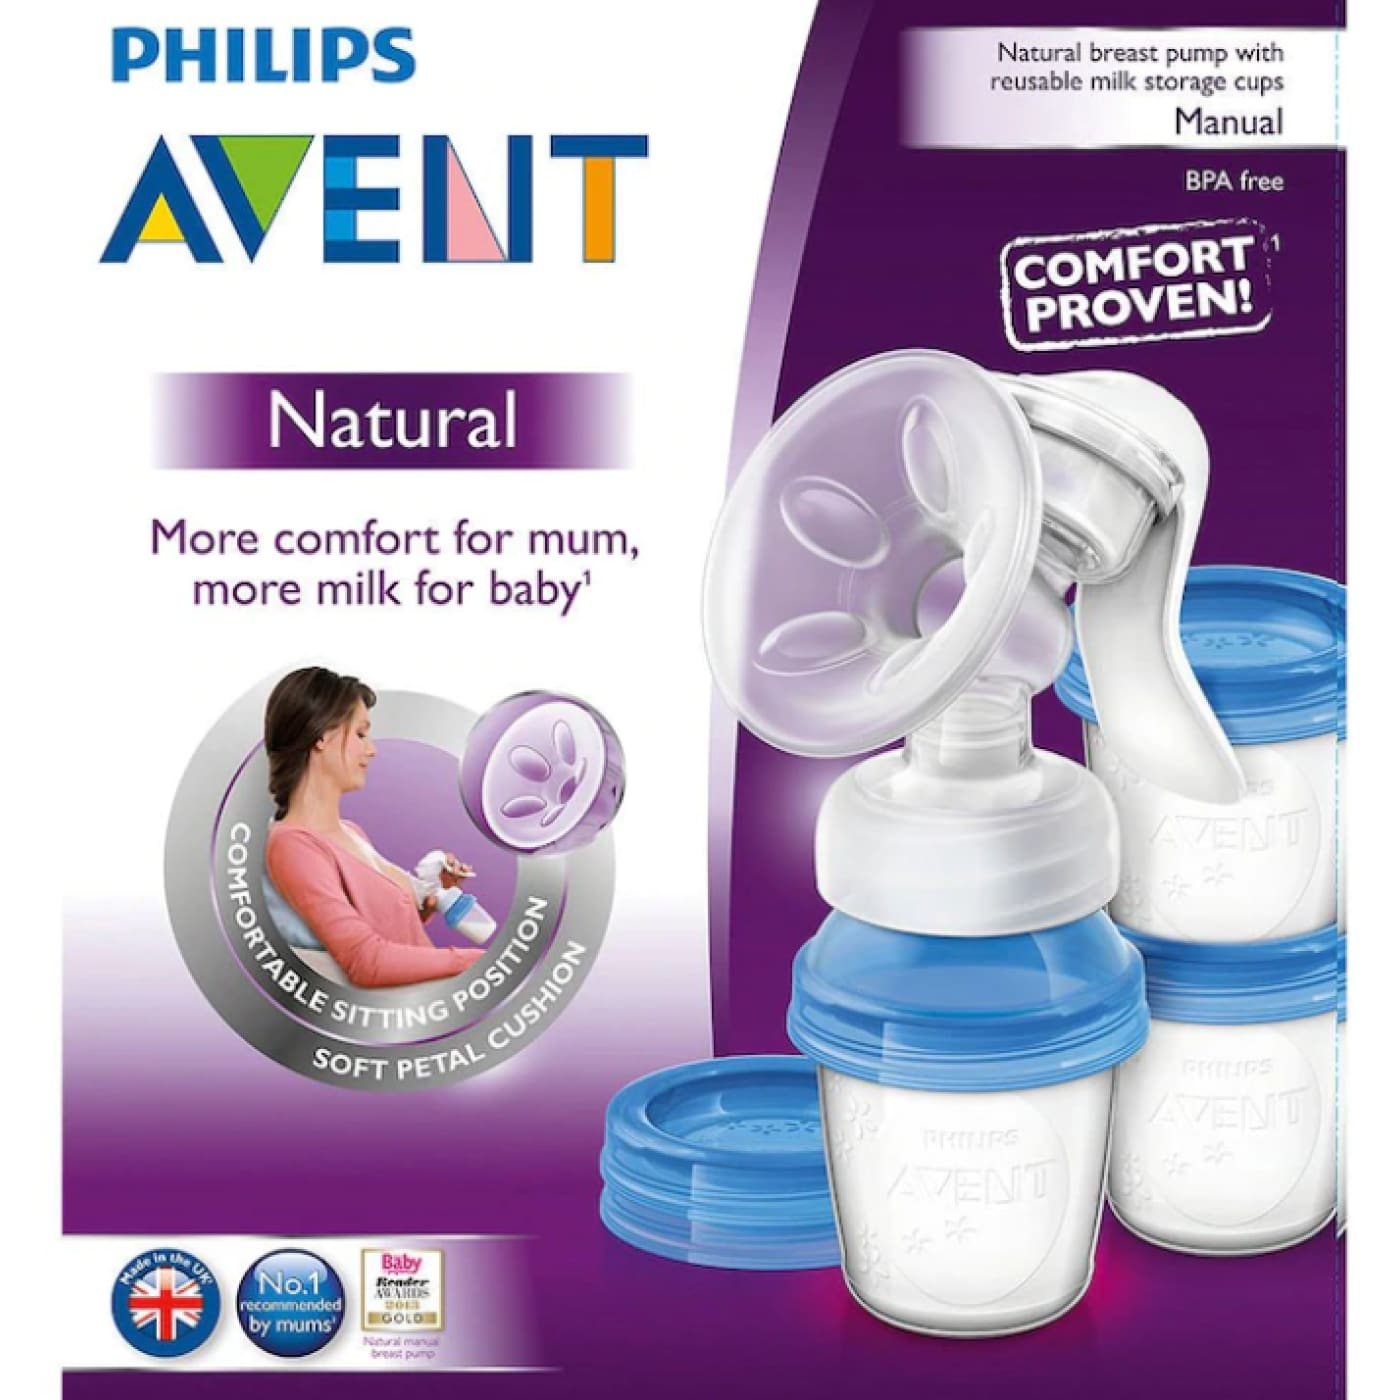 Avent Natural Breast Pump with Reusable Milk Storage Cups - NURSING & FEEDING - BREAST PUMPS/ACCESSORIES